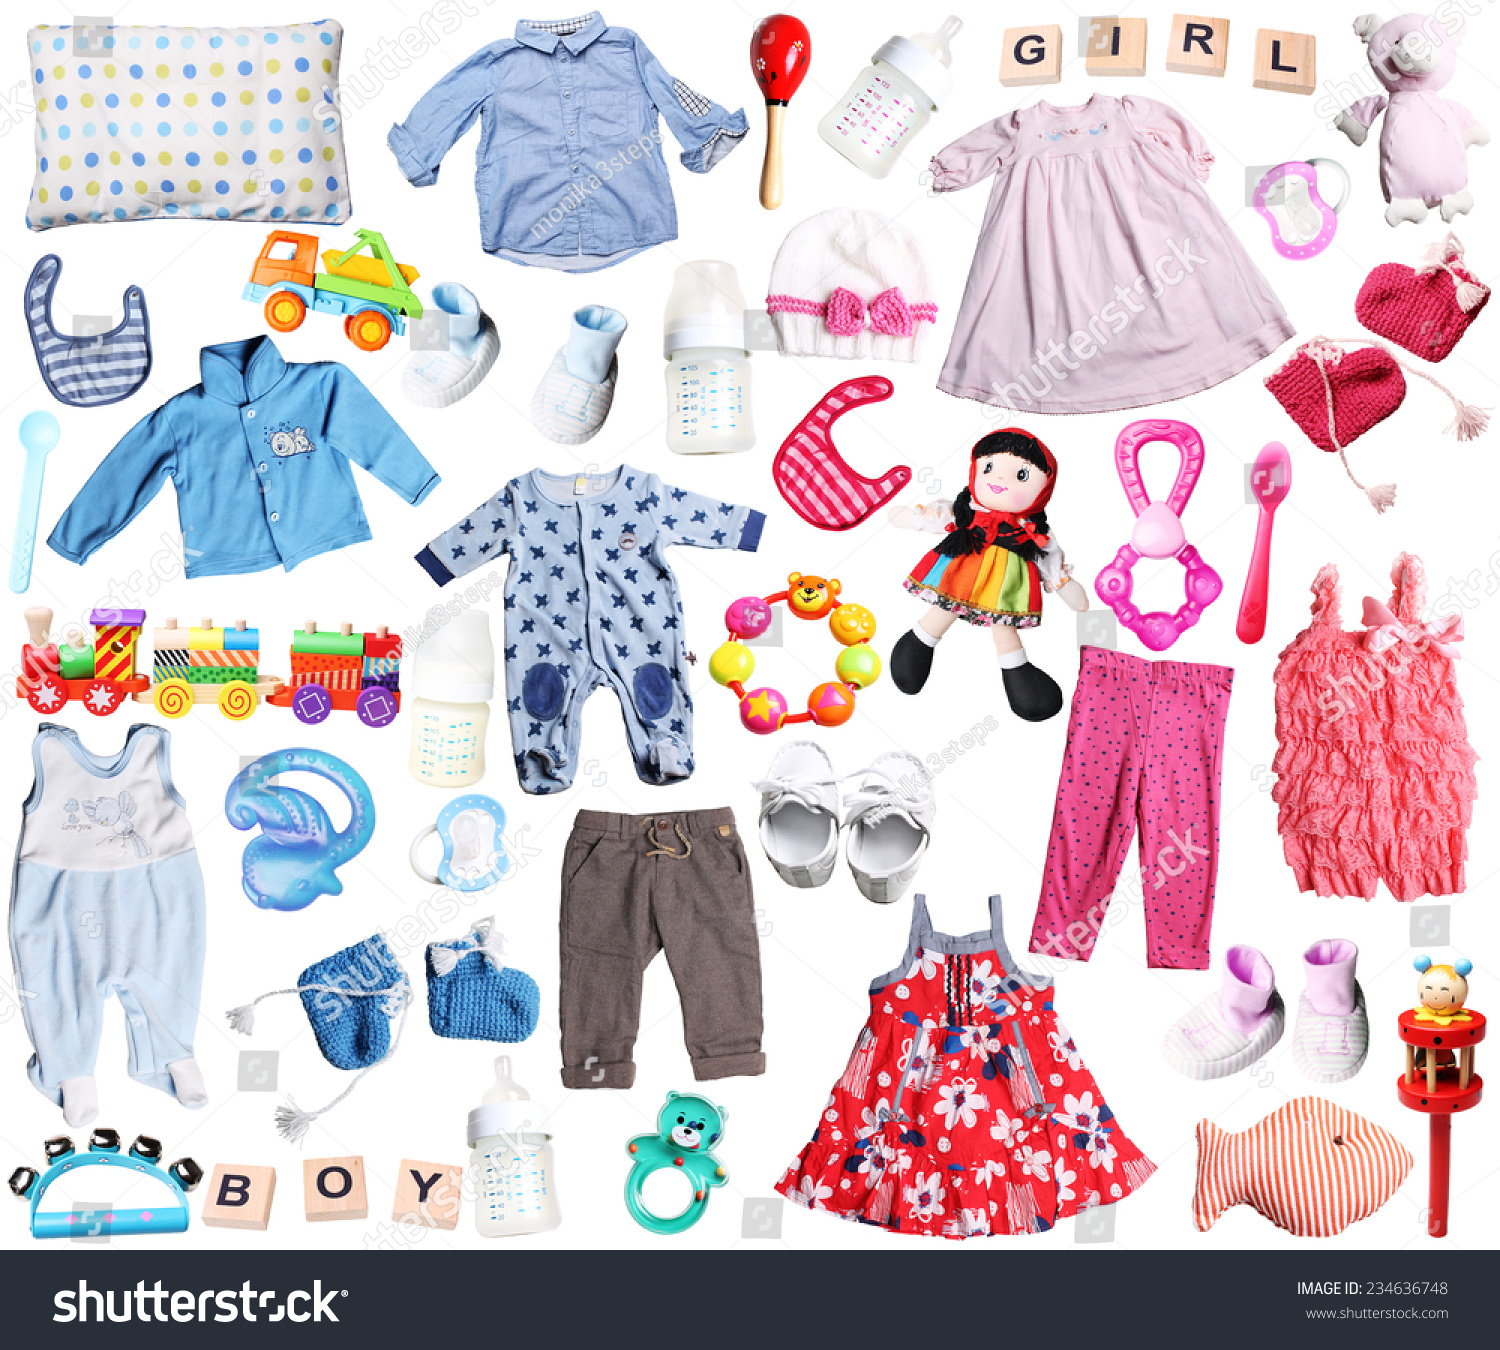 Clothes Accessories Baby Boy Girl Stock Safe to Use